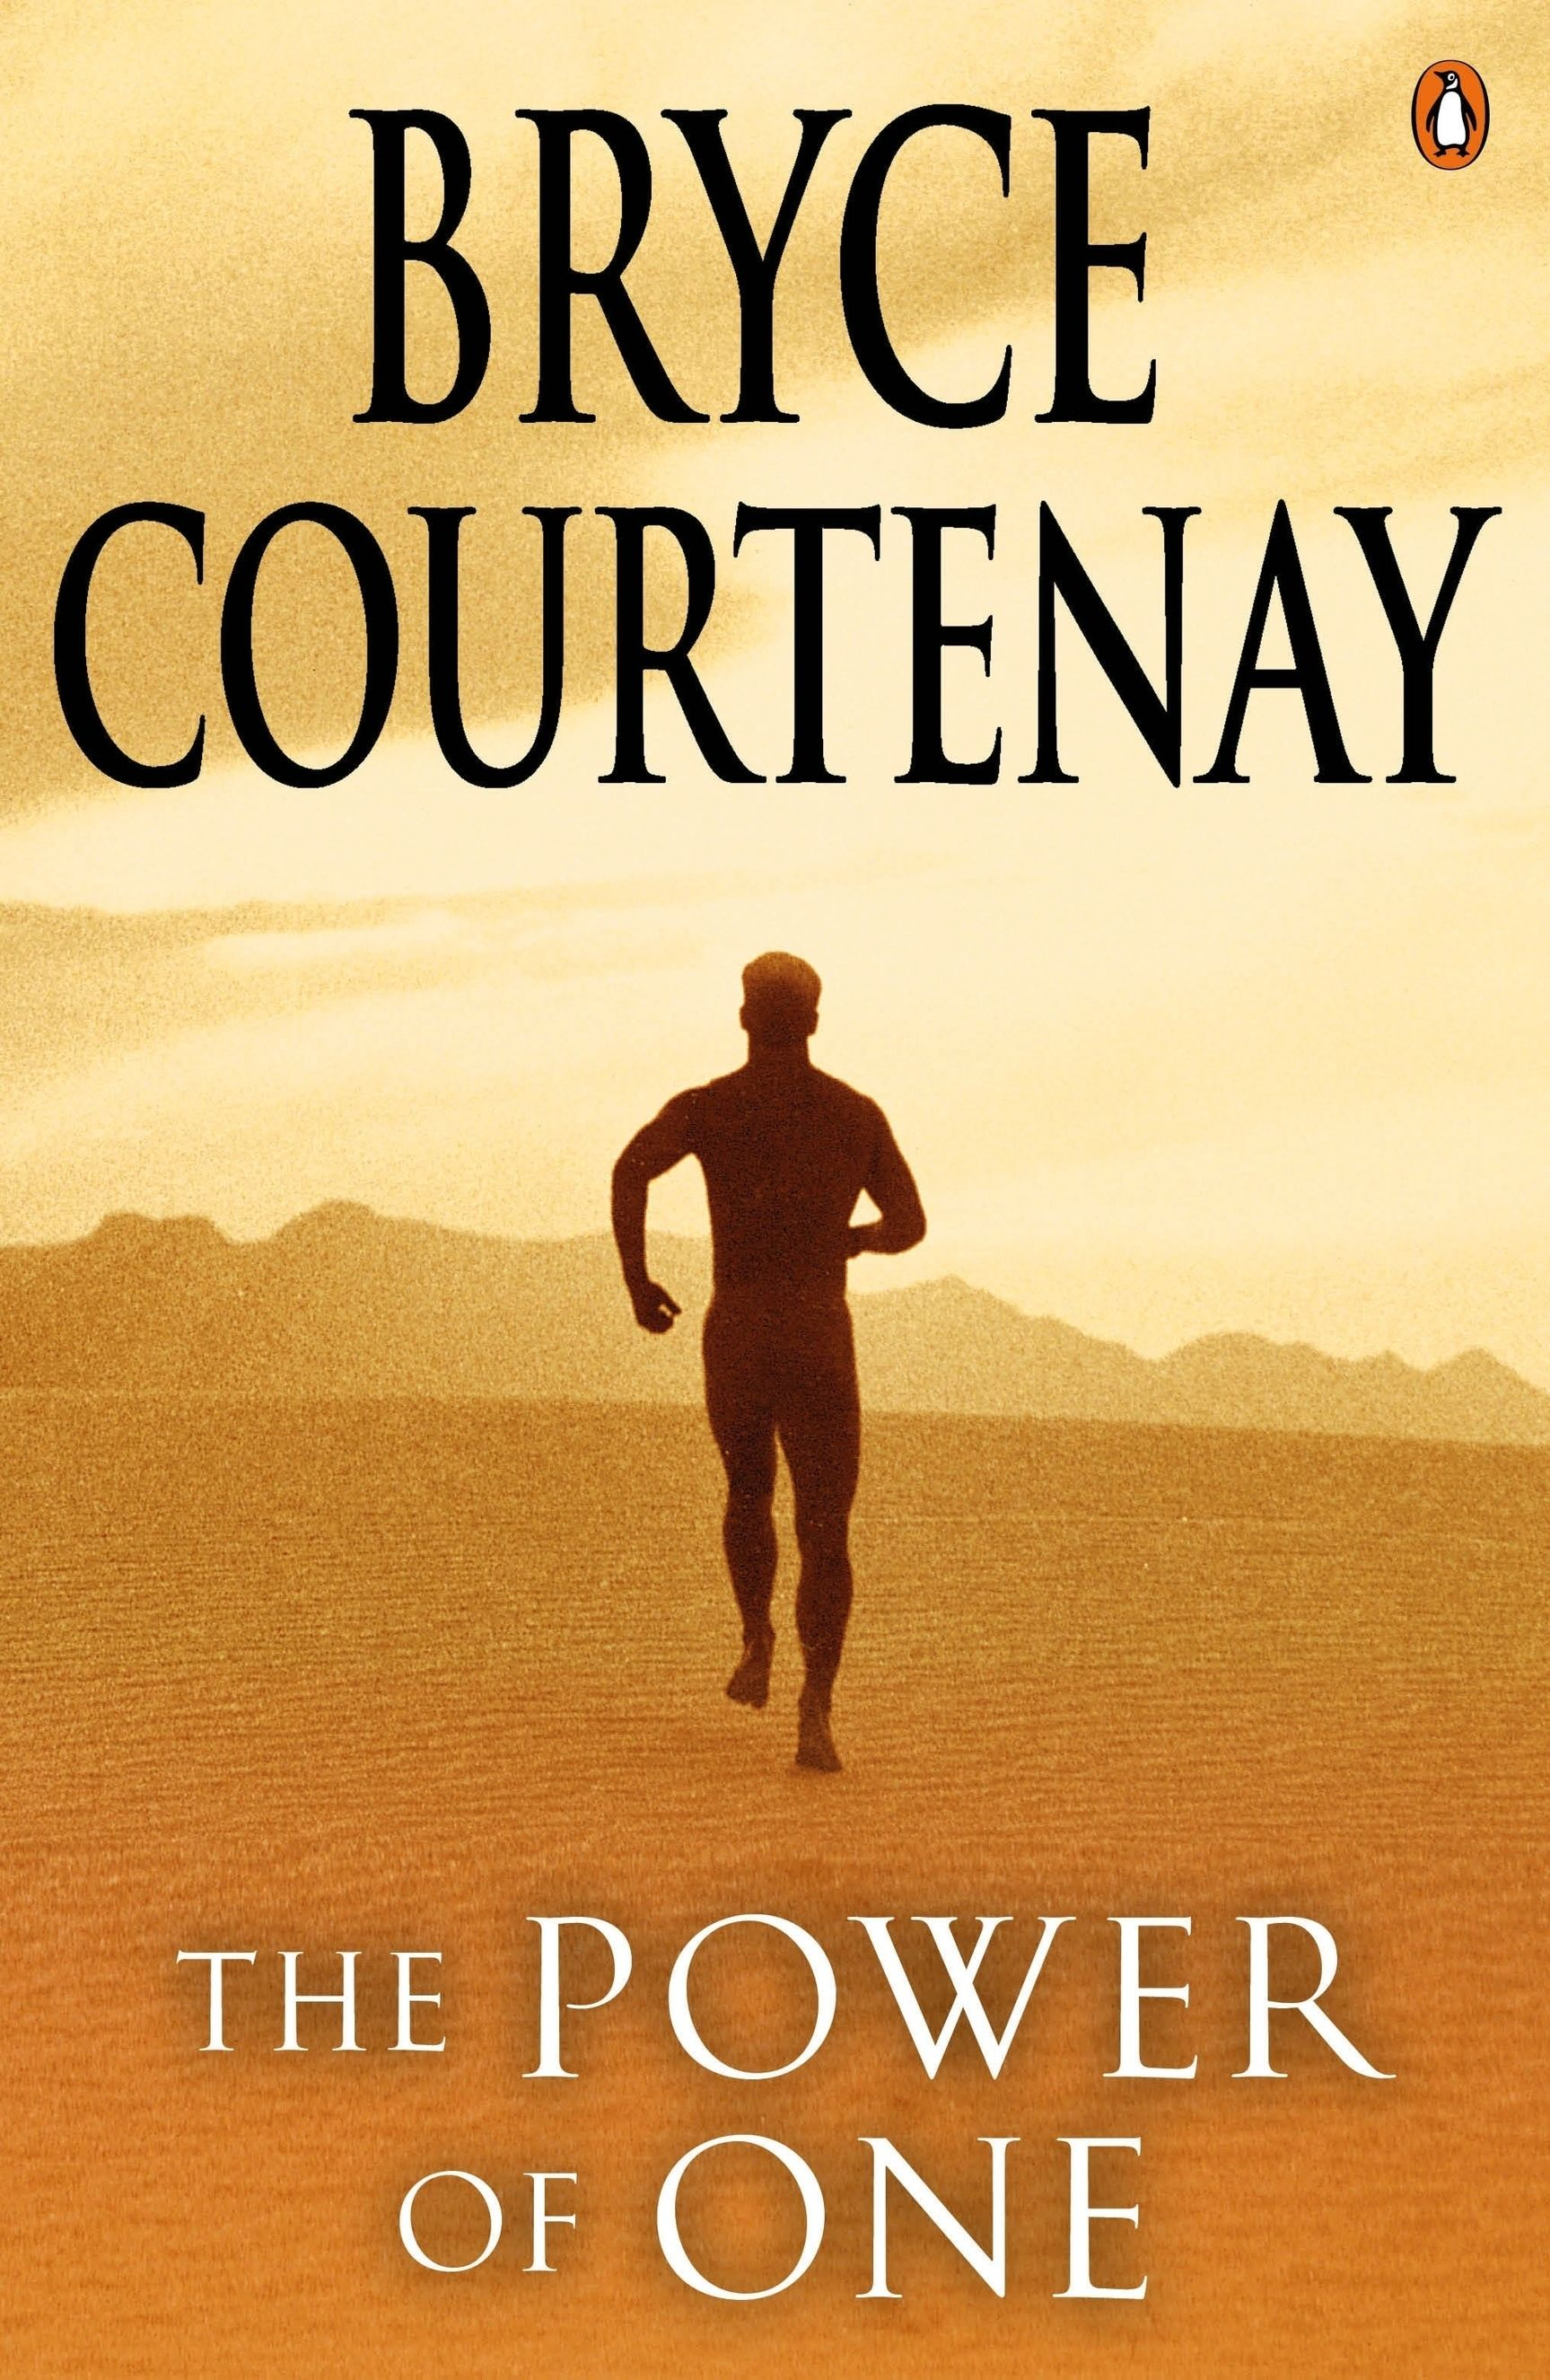 Listen To The Power Of One By Bryce Courtenay Audio Book Free Download